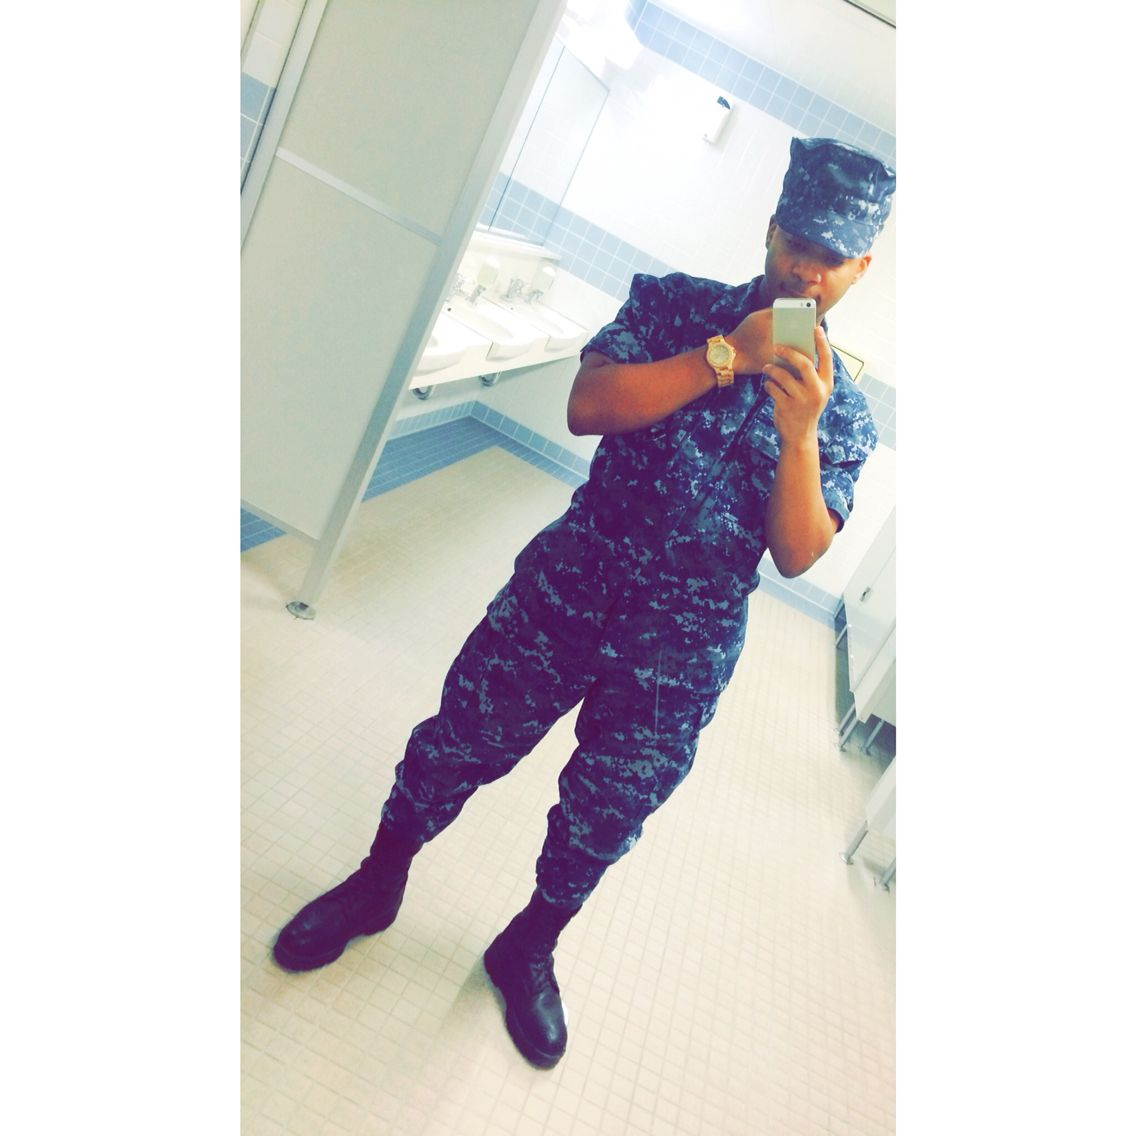 Meee  I look good in uniform